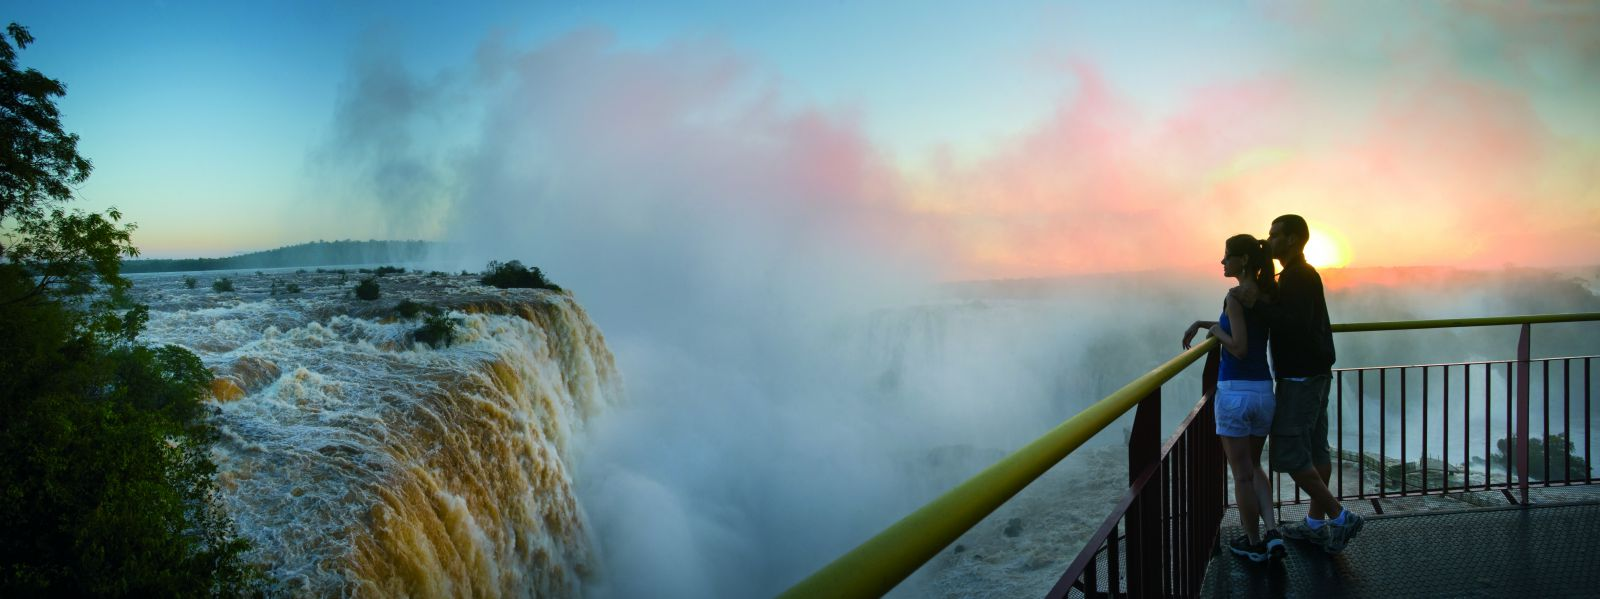 Iguazu Waterfalls Panoramic View